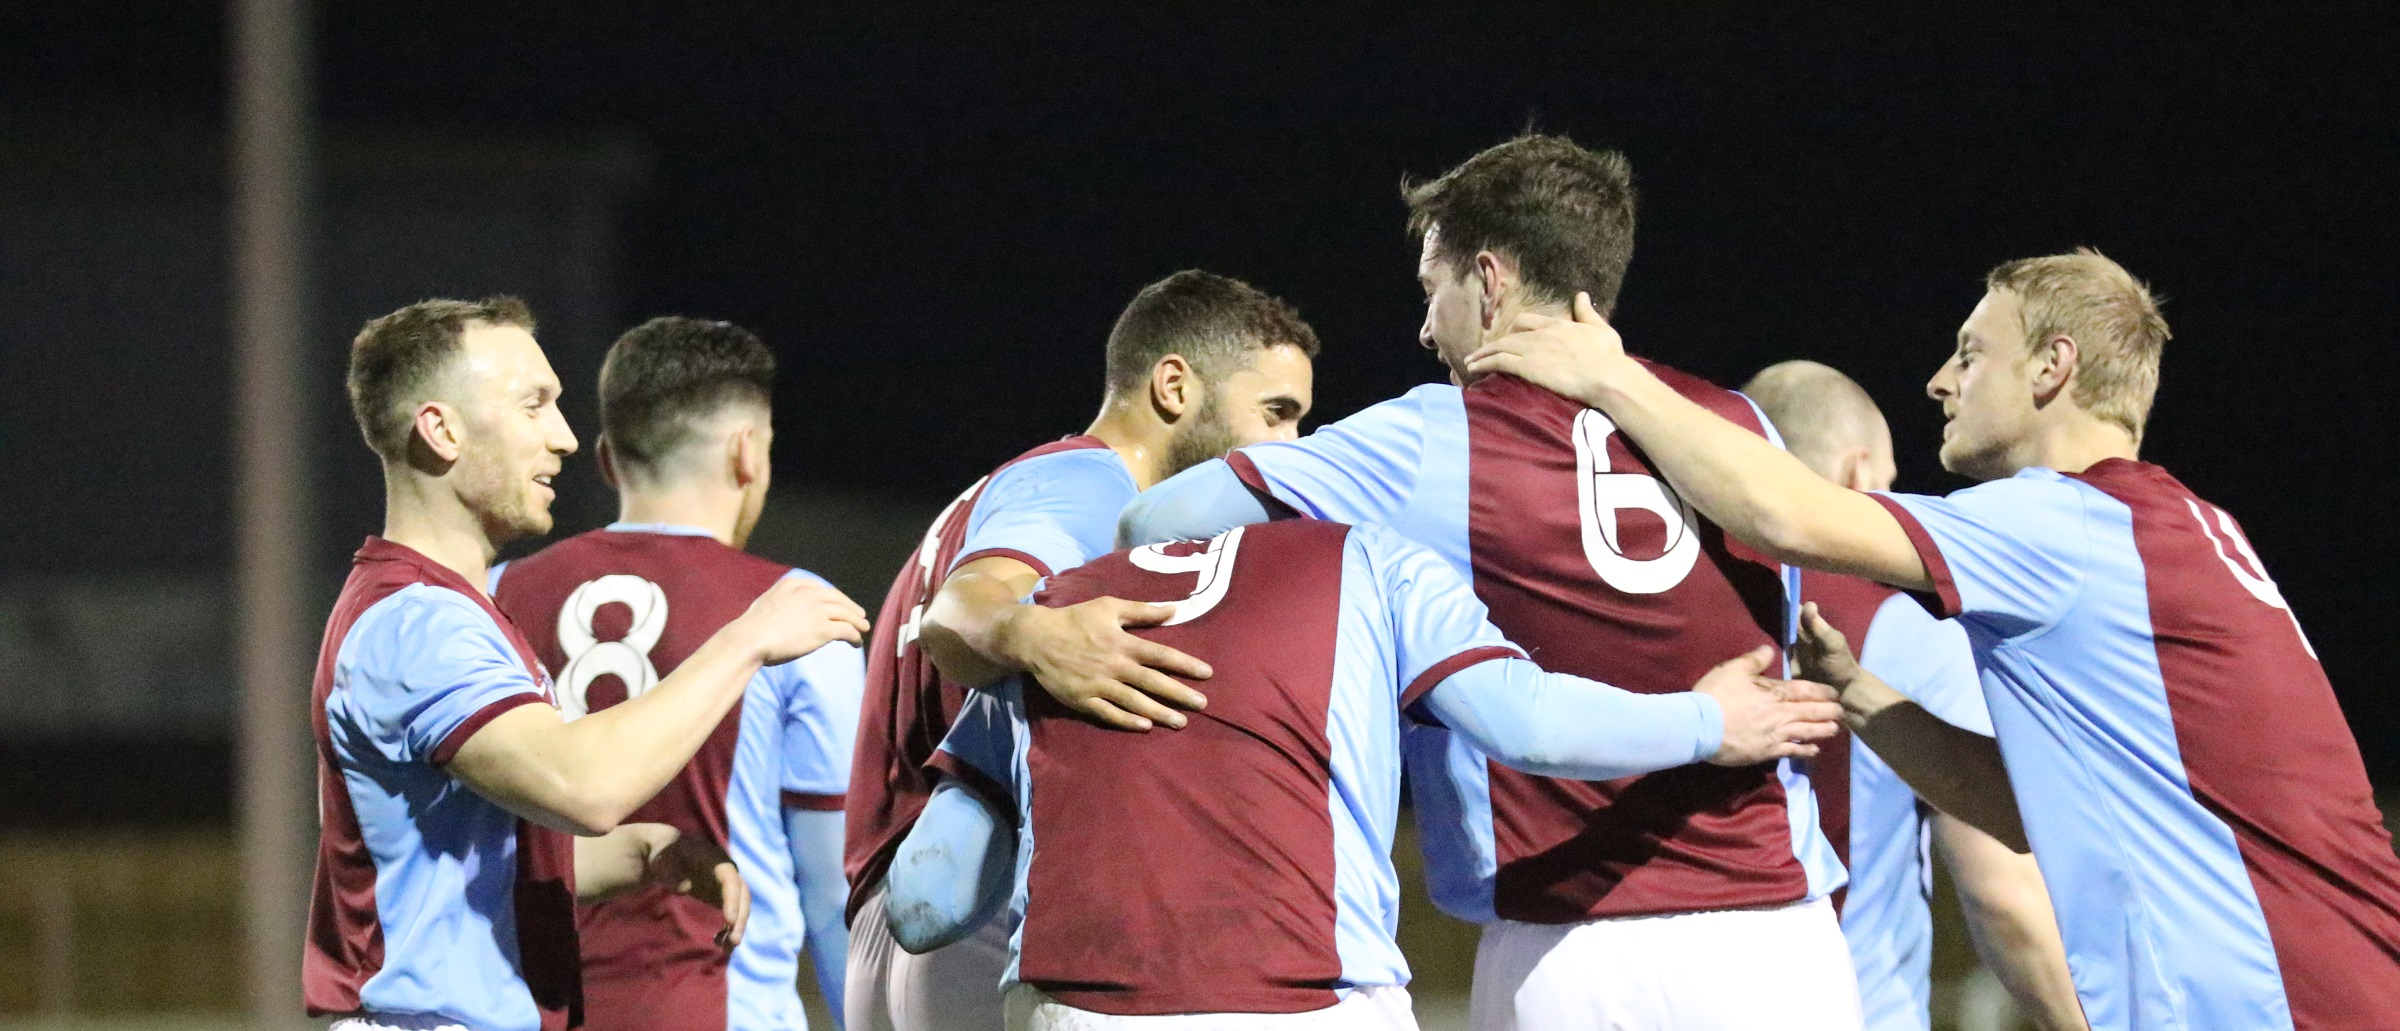 Match Preview: South Shields vs Birtley Town